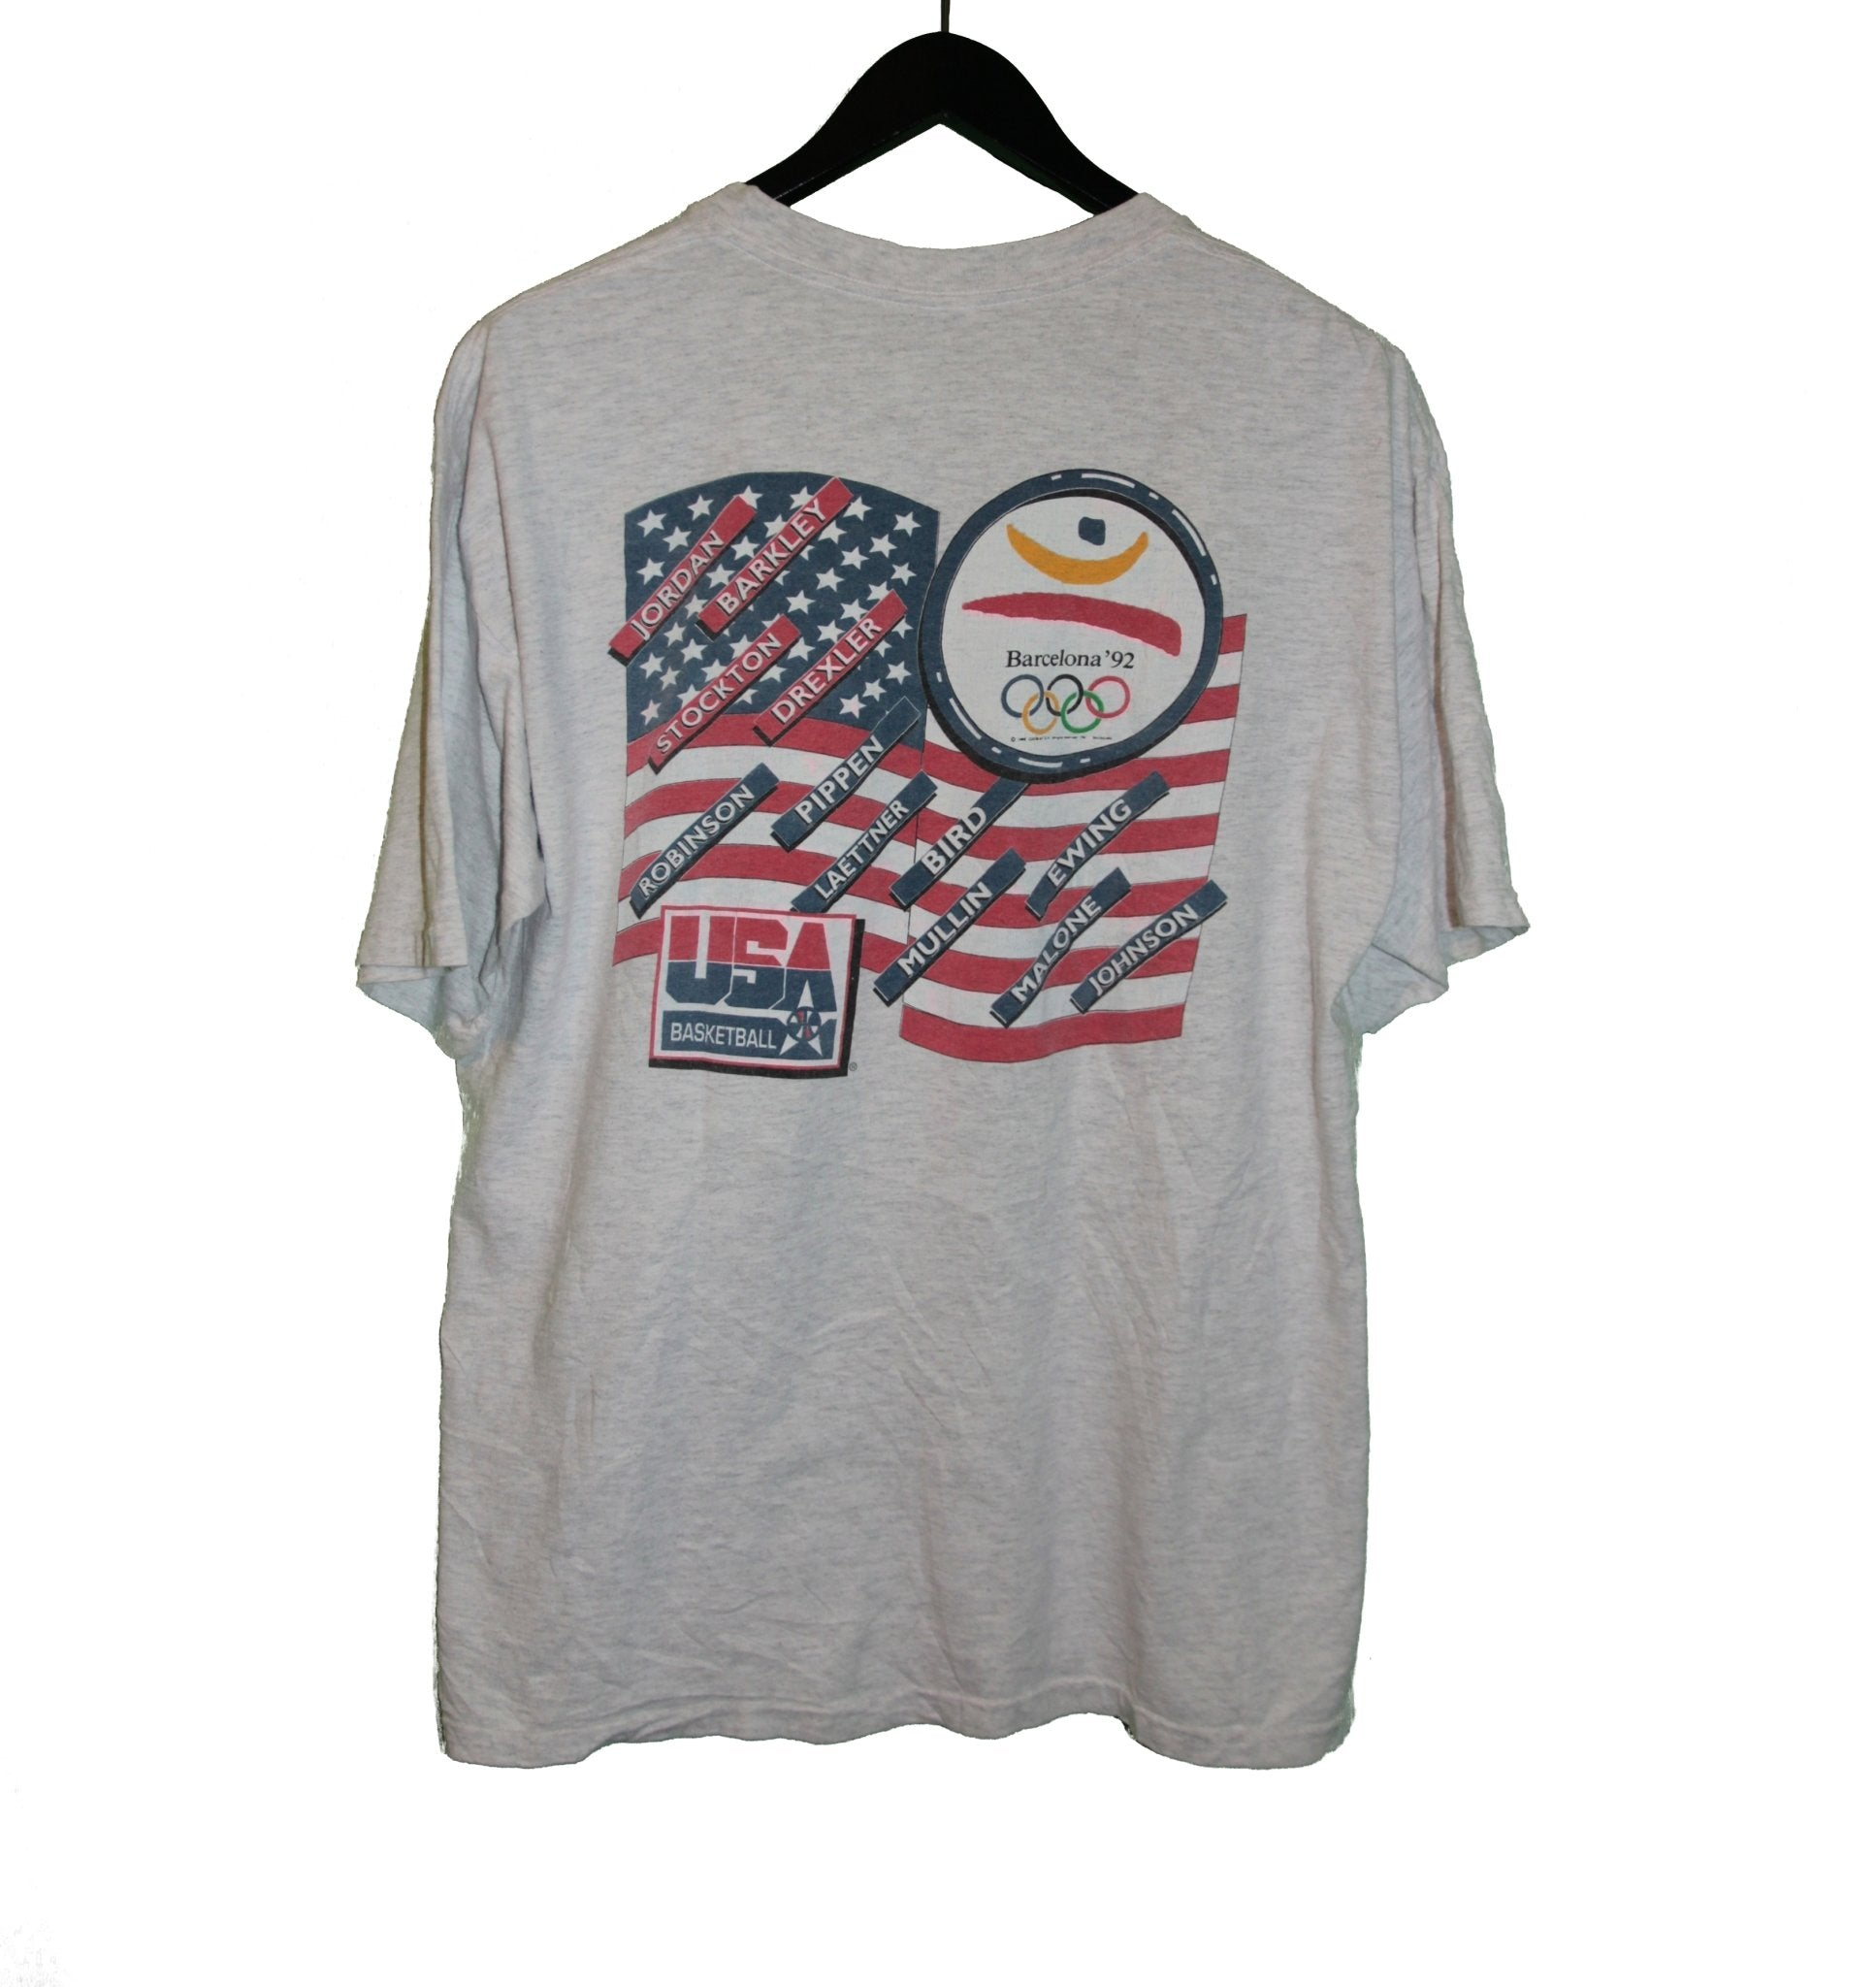 Dream Team USA 1992 Olympics Shirt - Faded AU